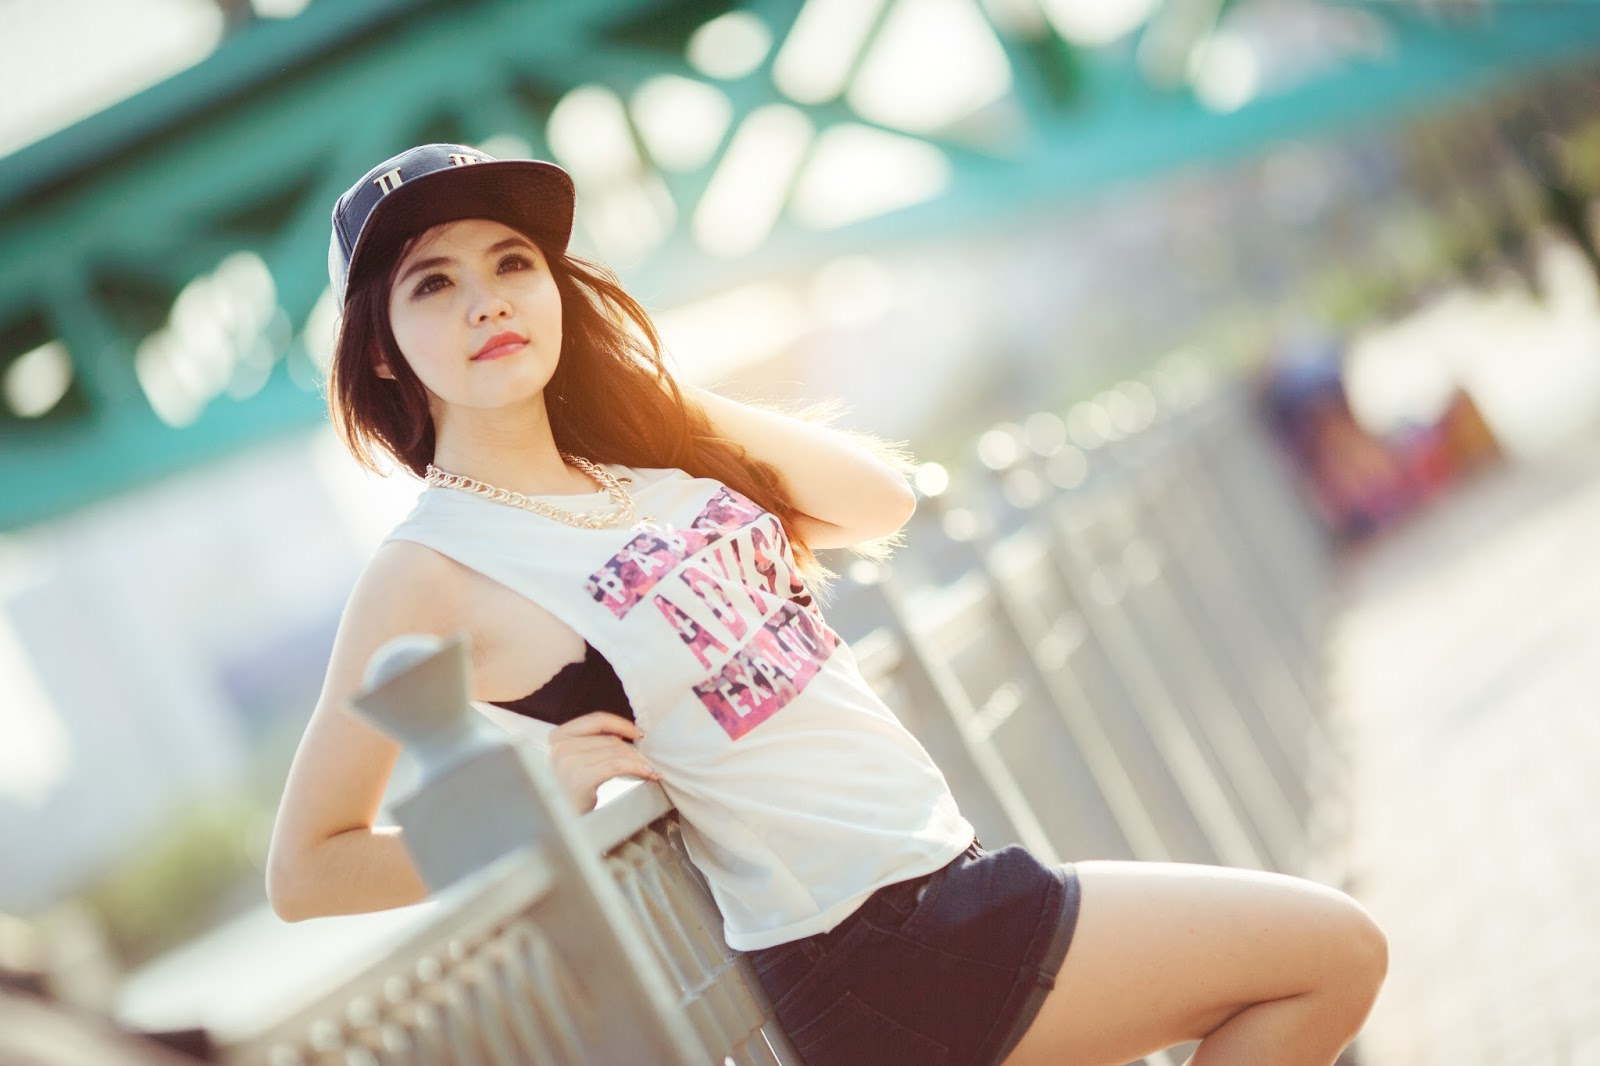 Vietnamese Beauty Girls by Mụp Photography (P1) 56 pics